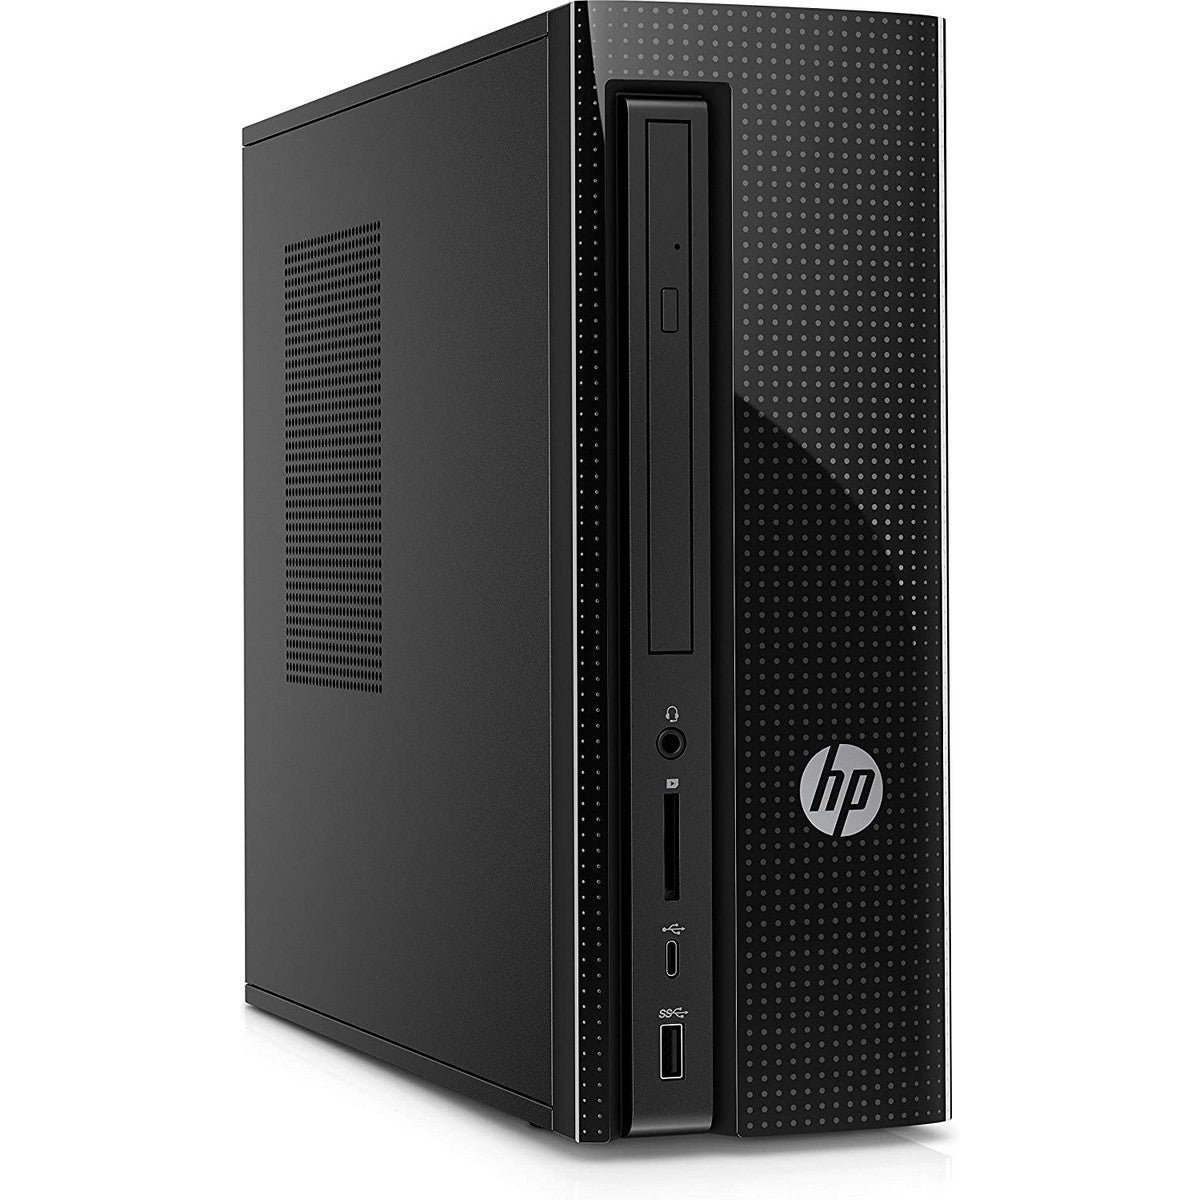 HP Slimline 270-p043w Slim Desktop , Intel Core i3 i3-7100 3.90GHz 3MB Cache, 8GB RAM, Intel HD GPU, 1TB HDD, Windows 10, Black